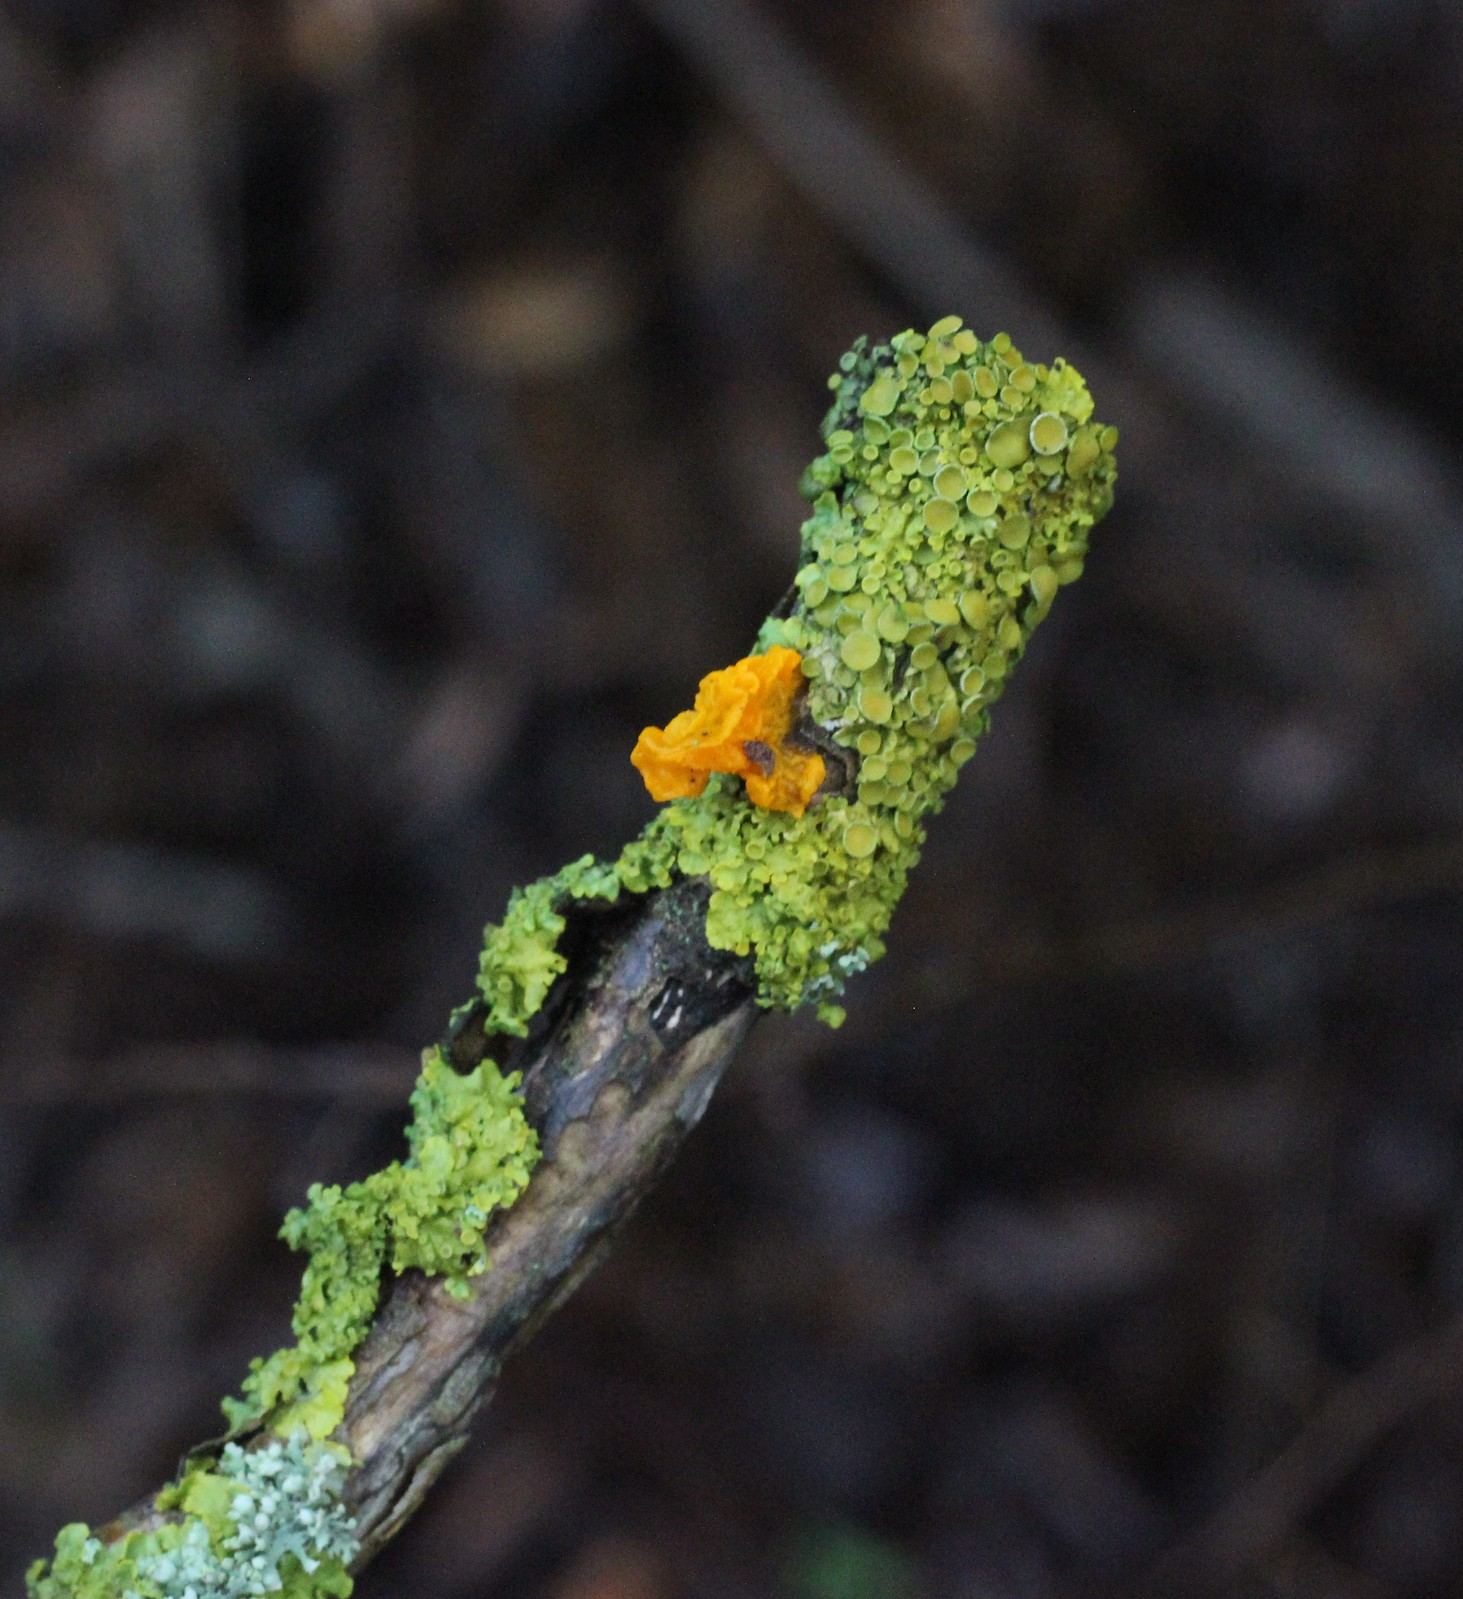 Yellow Brain fungus on lichen near Luddesdown